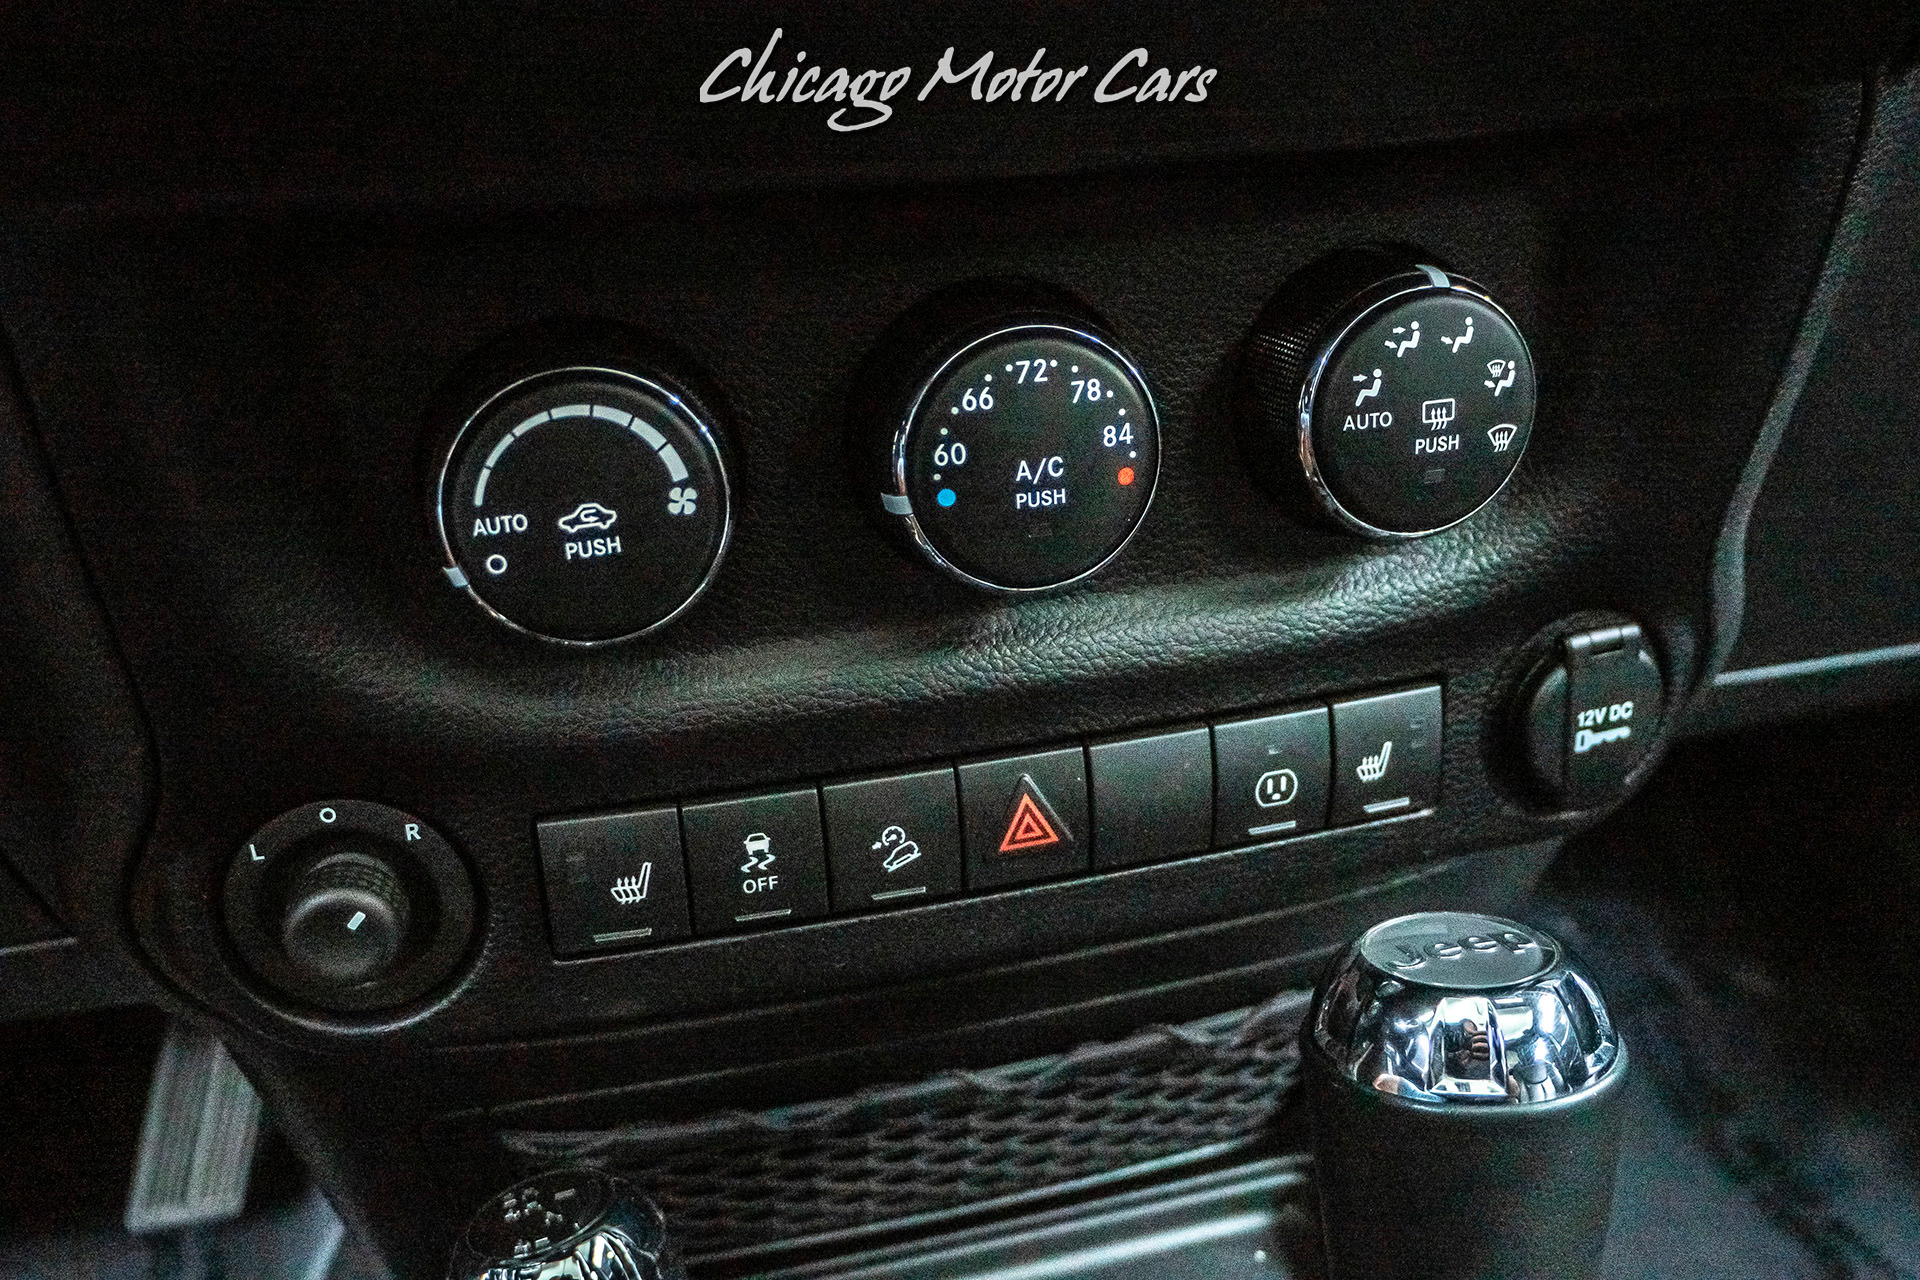 Used-2015-Jeep-Wrangler-Unlimited-Rubicon-SUV-HARD-ROCK-EDITION